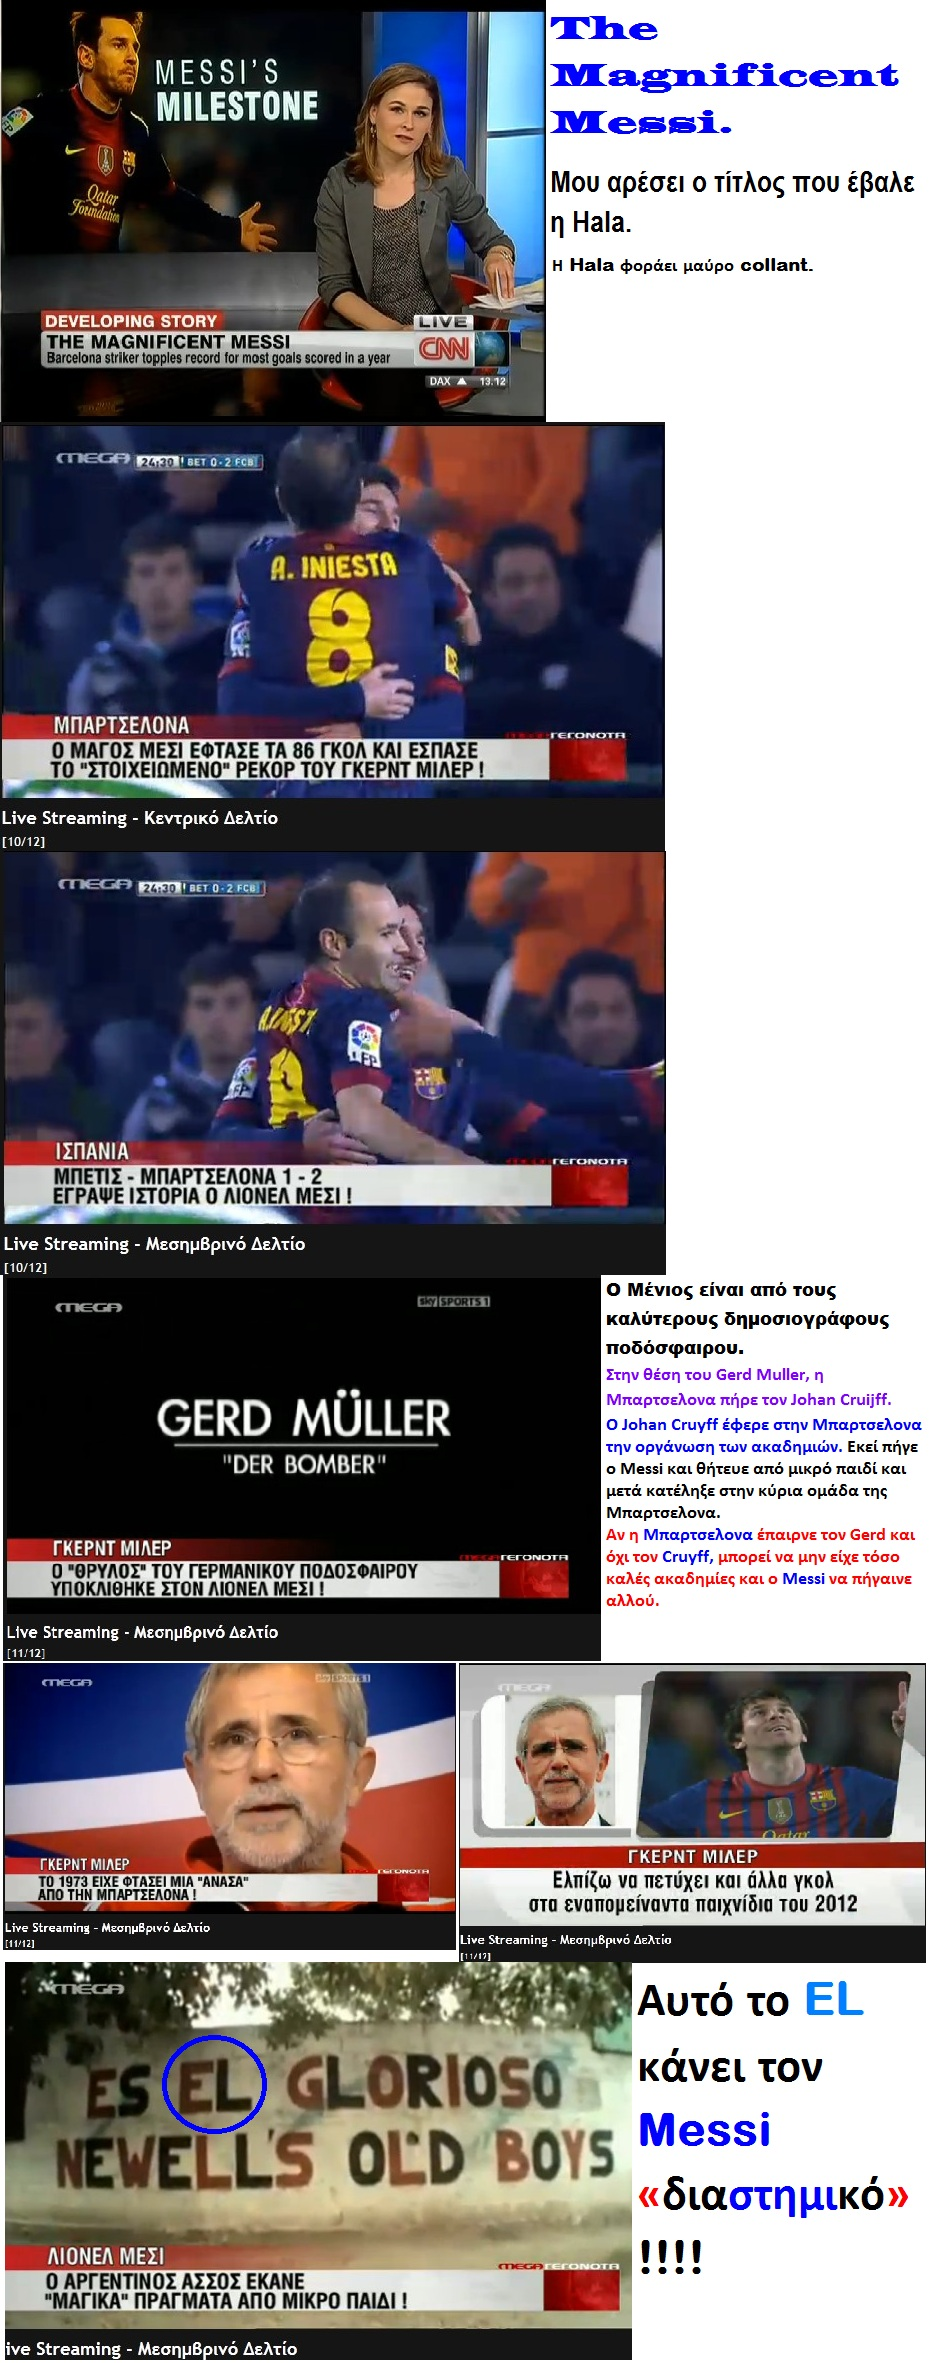 CNN FOOTBALL MESSI THE MAGNIFICENT 01 121212